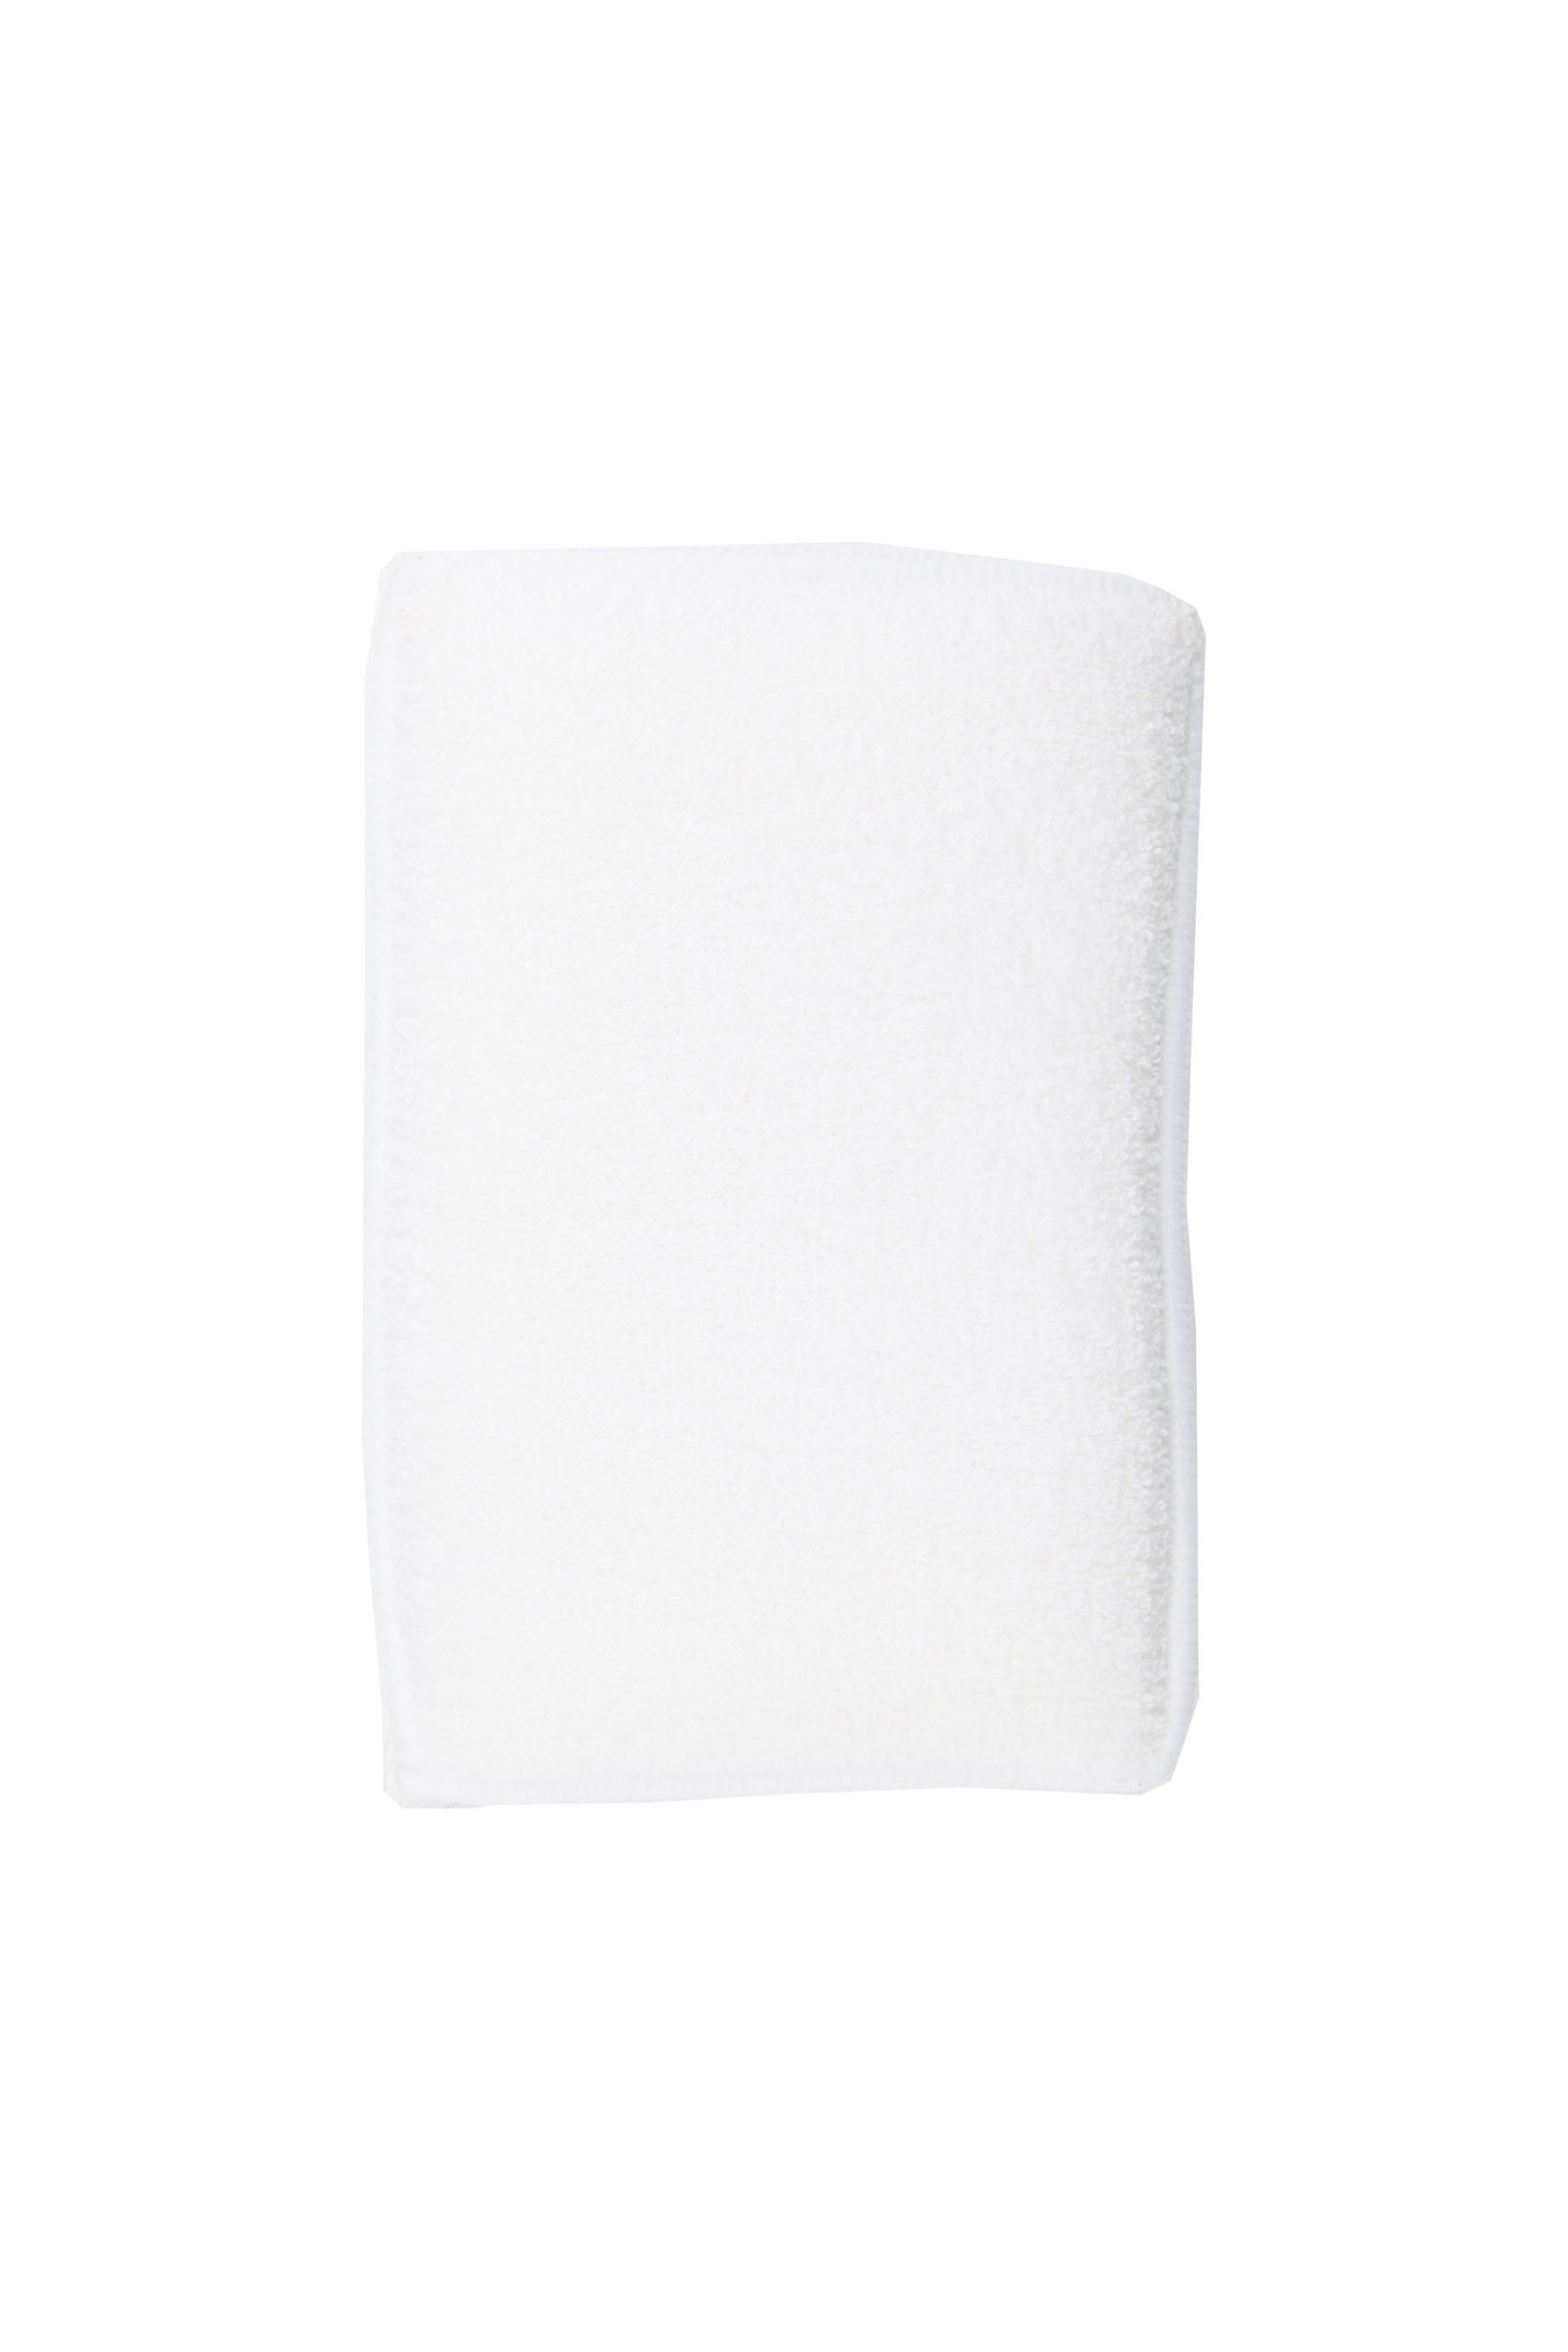 Applicator Pad - 2 pack 1